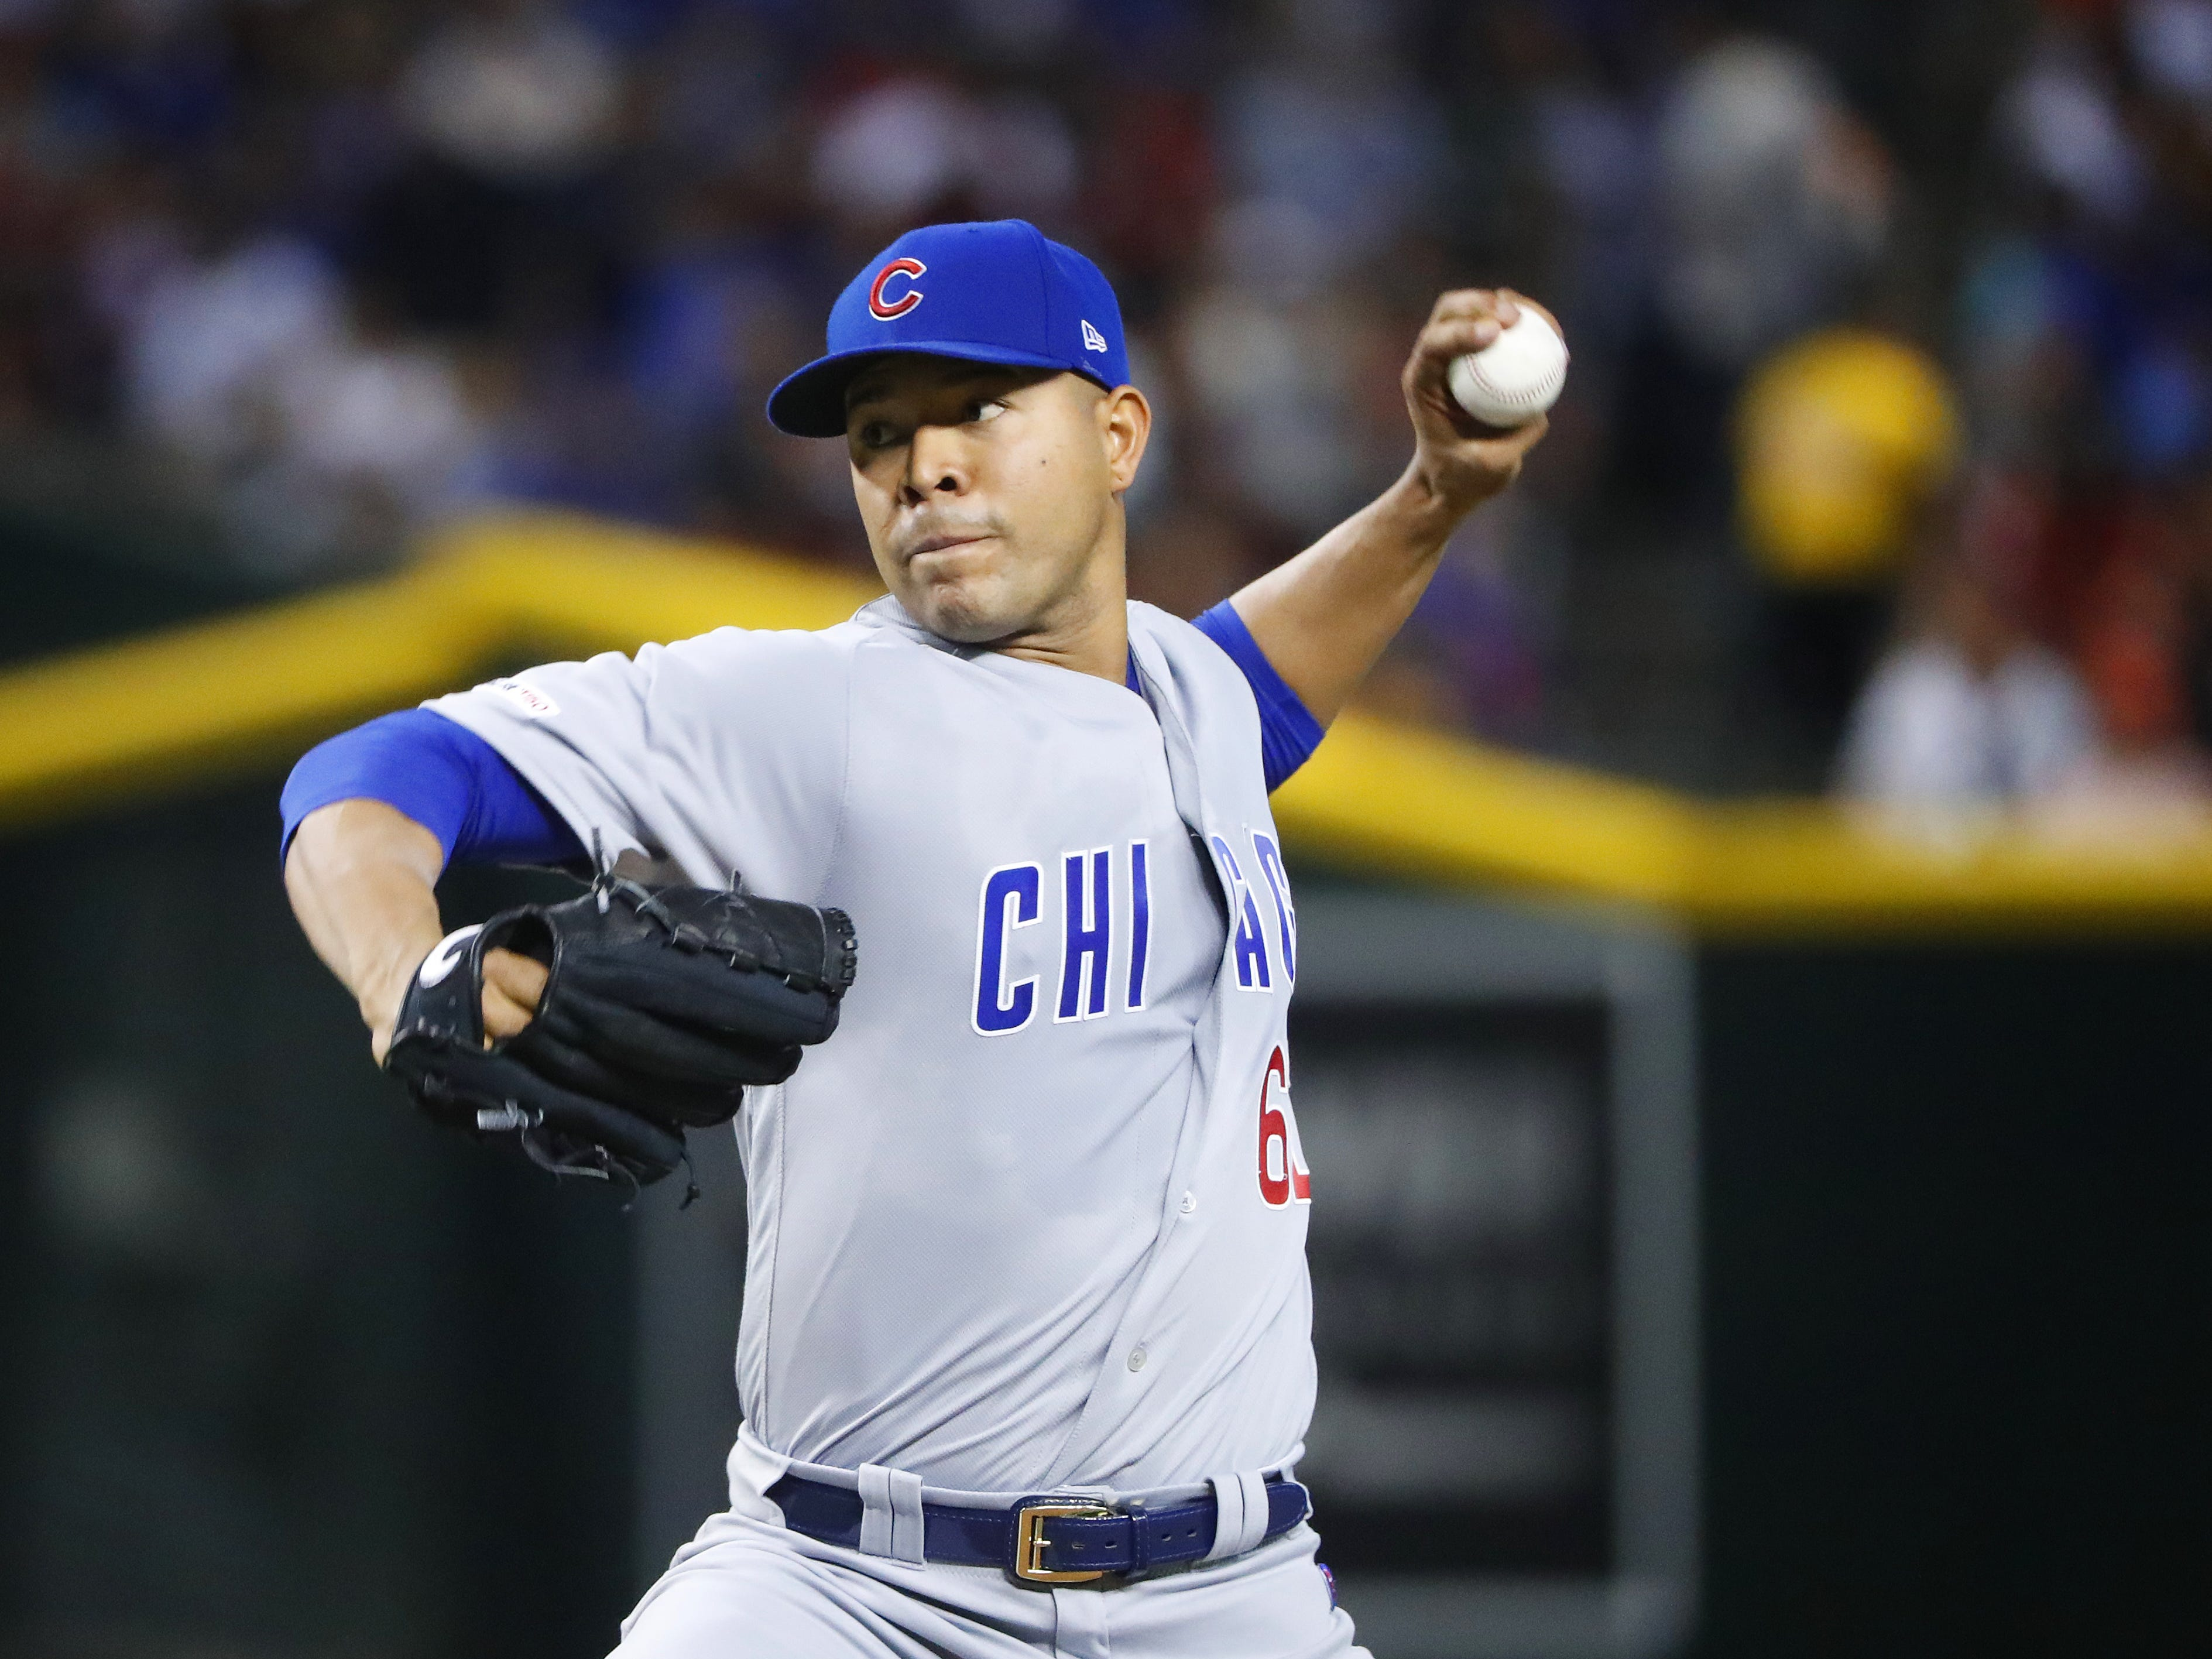 Cubs' Jose Quintana (62) pitches during the first inning against the Diamondbacks at Chase Field in Phoenix, Ariz. on April 28, 2019.